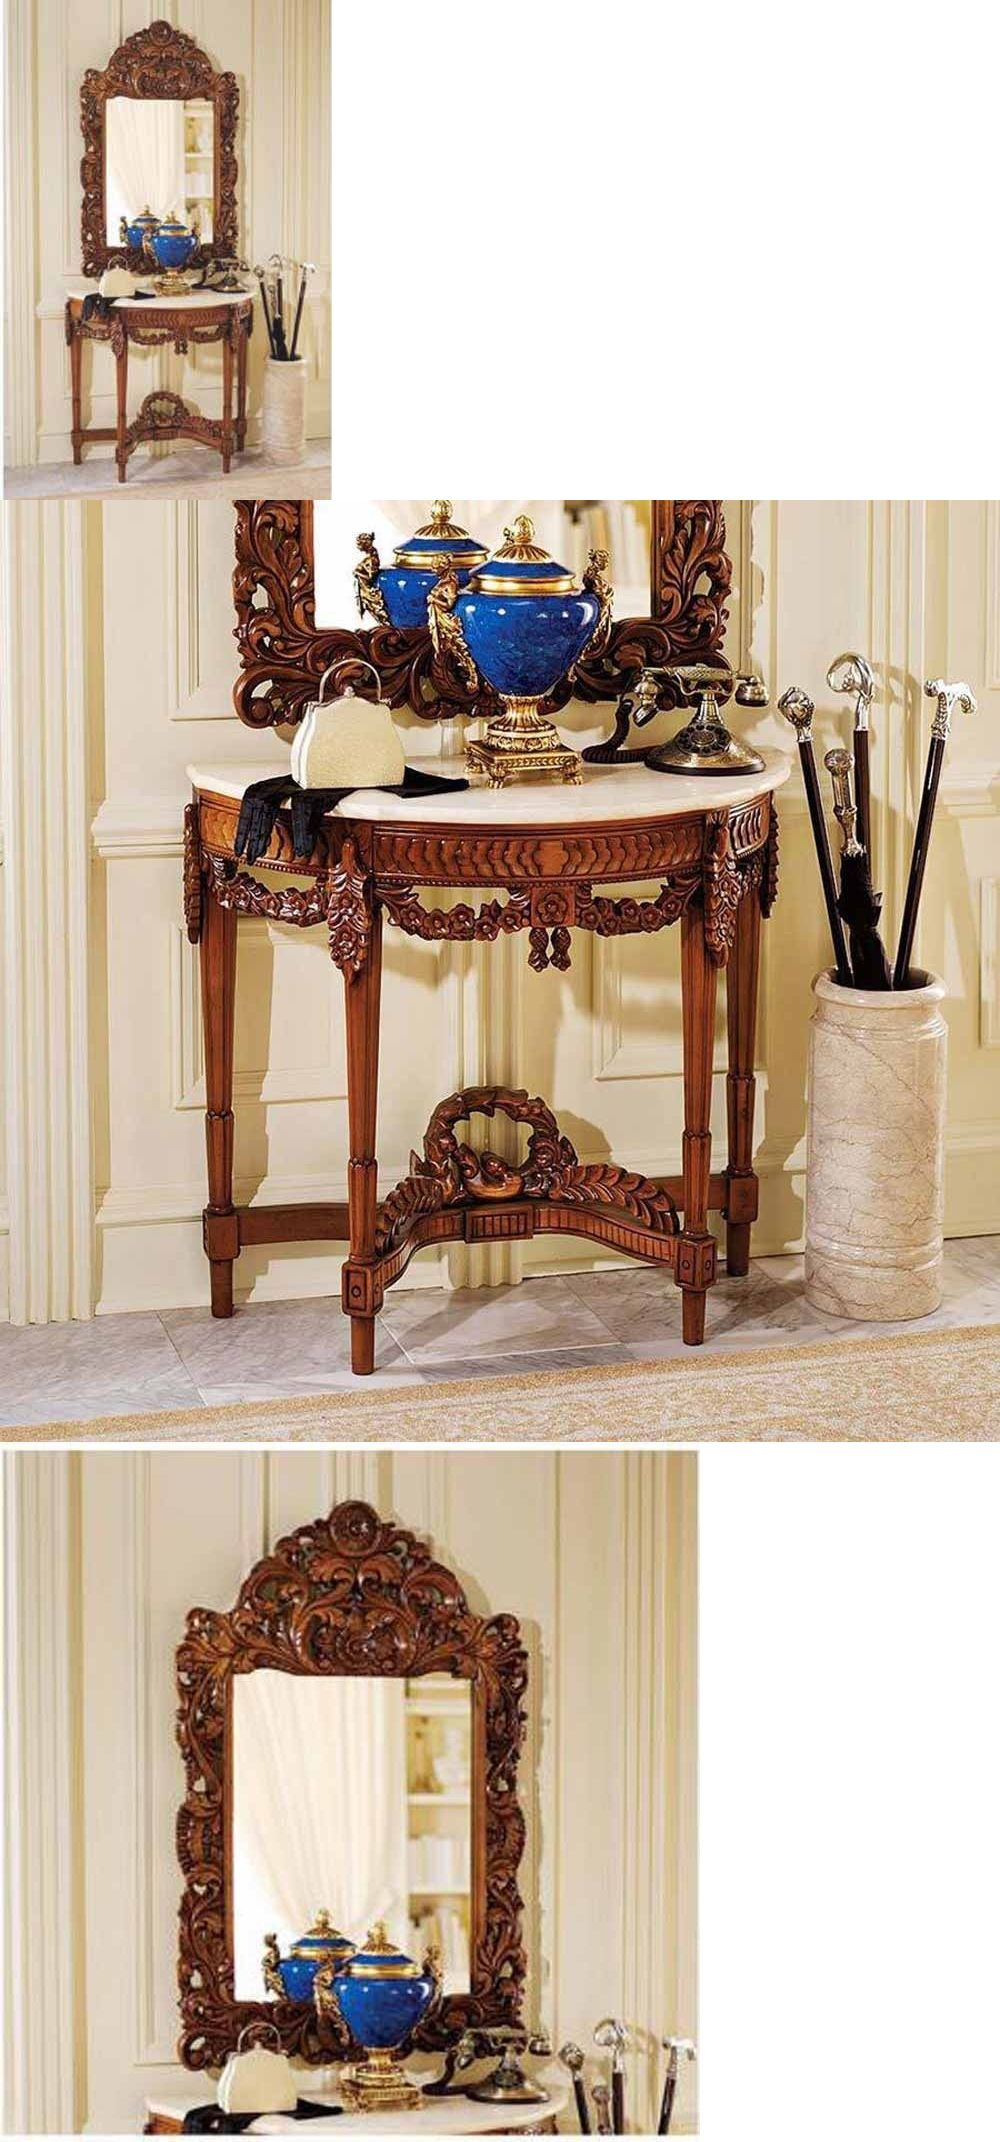 Antiques antique french replica hand carved wooden console table antiques antique french replica hand carved wooden console table marble top and mirror set geotapseo Gallery